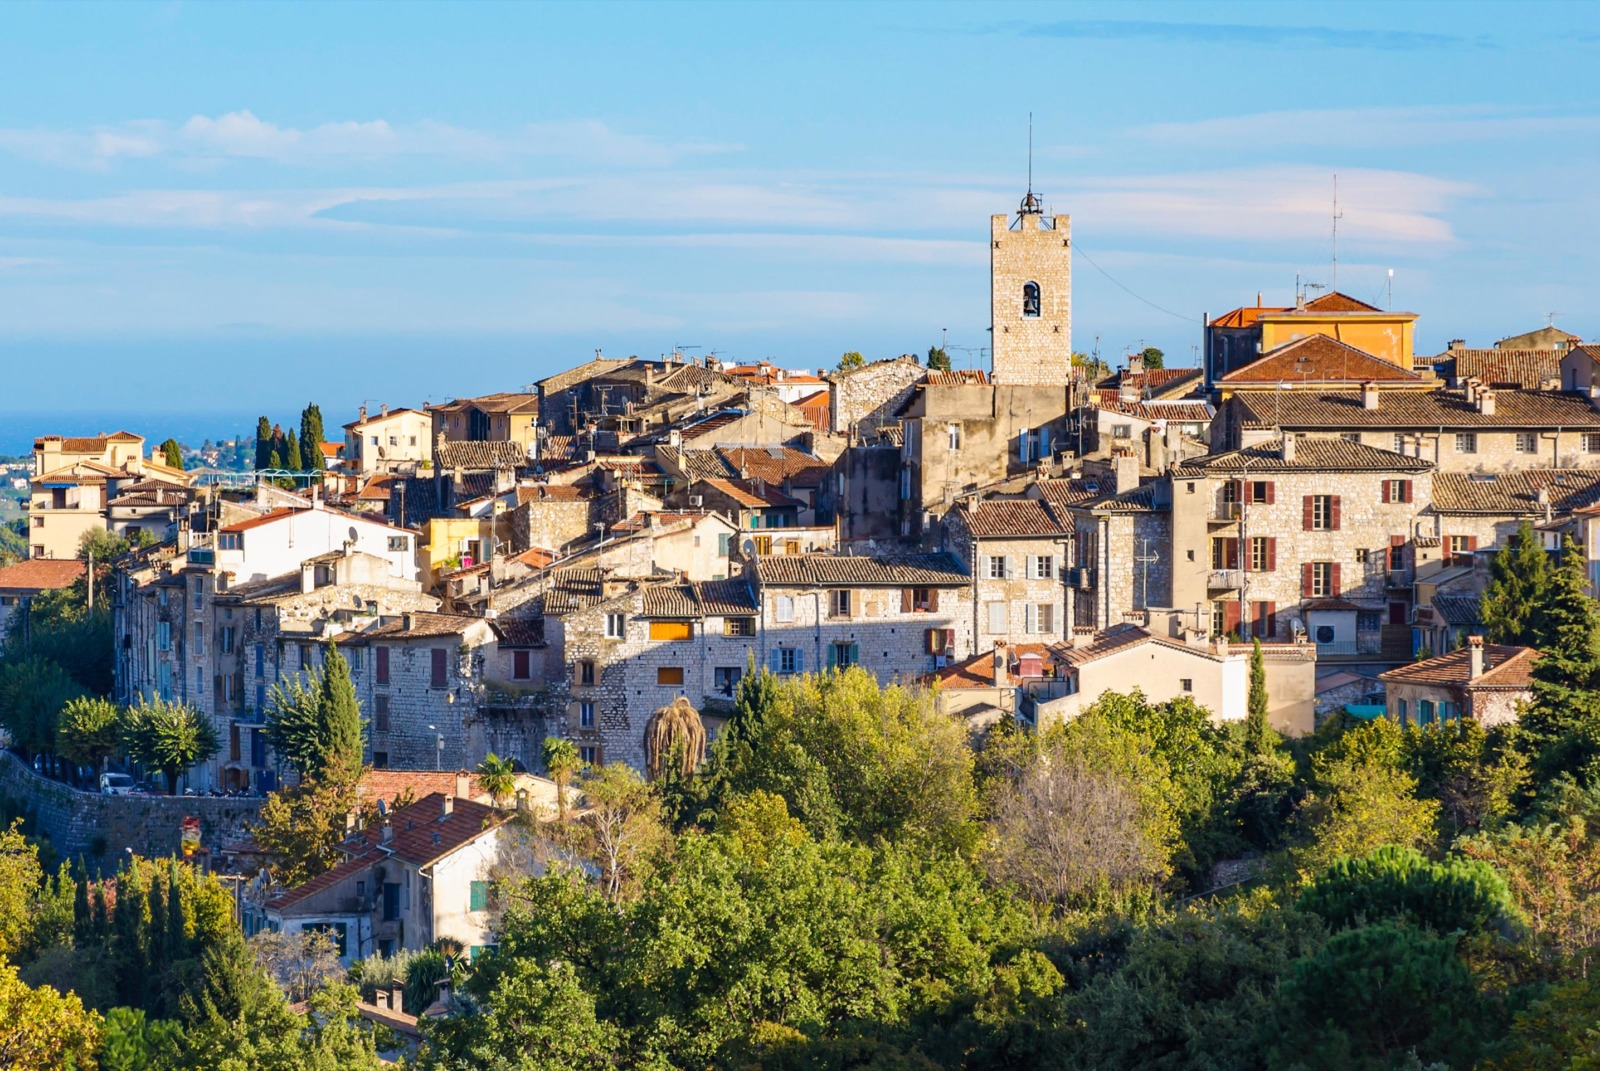 Vence © Myrabella - licence [CC BY-SA 3.0] from Wikimedia Commons